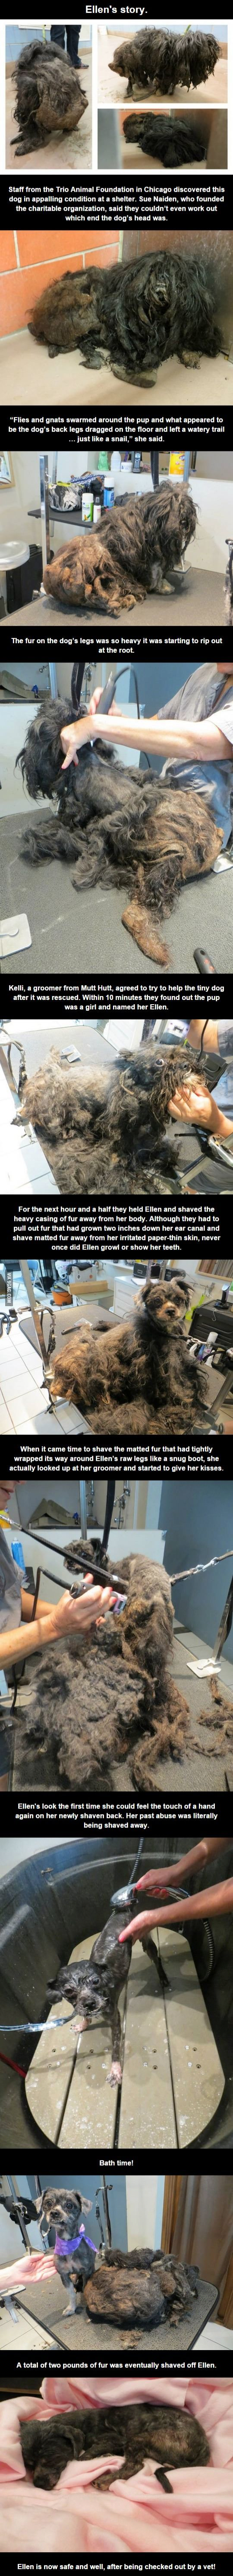 12heart-warming photos that prove happy endings exist inreal life